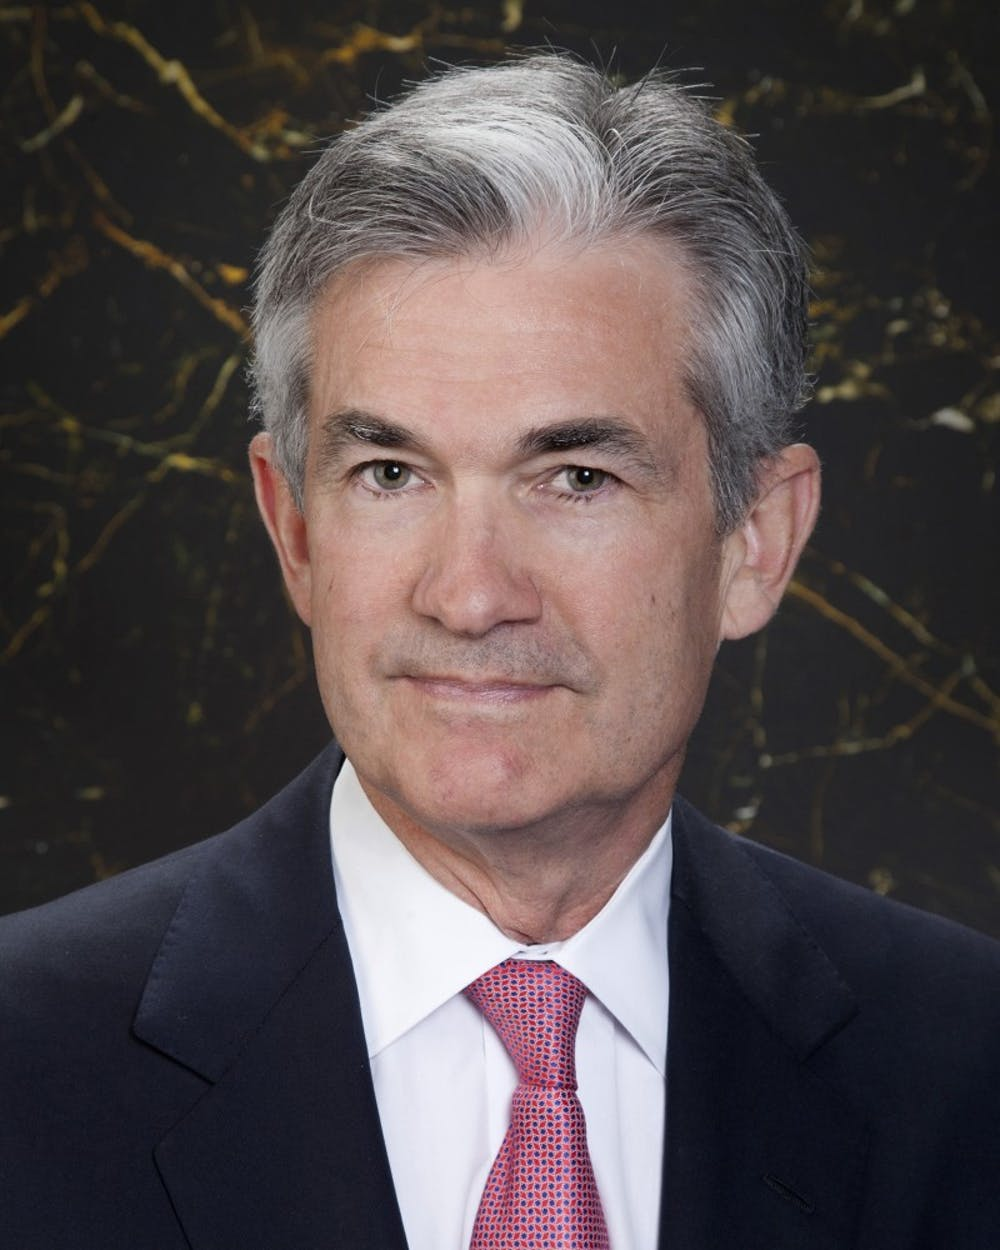 jerome-h-powell